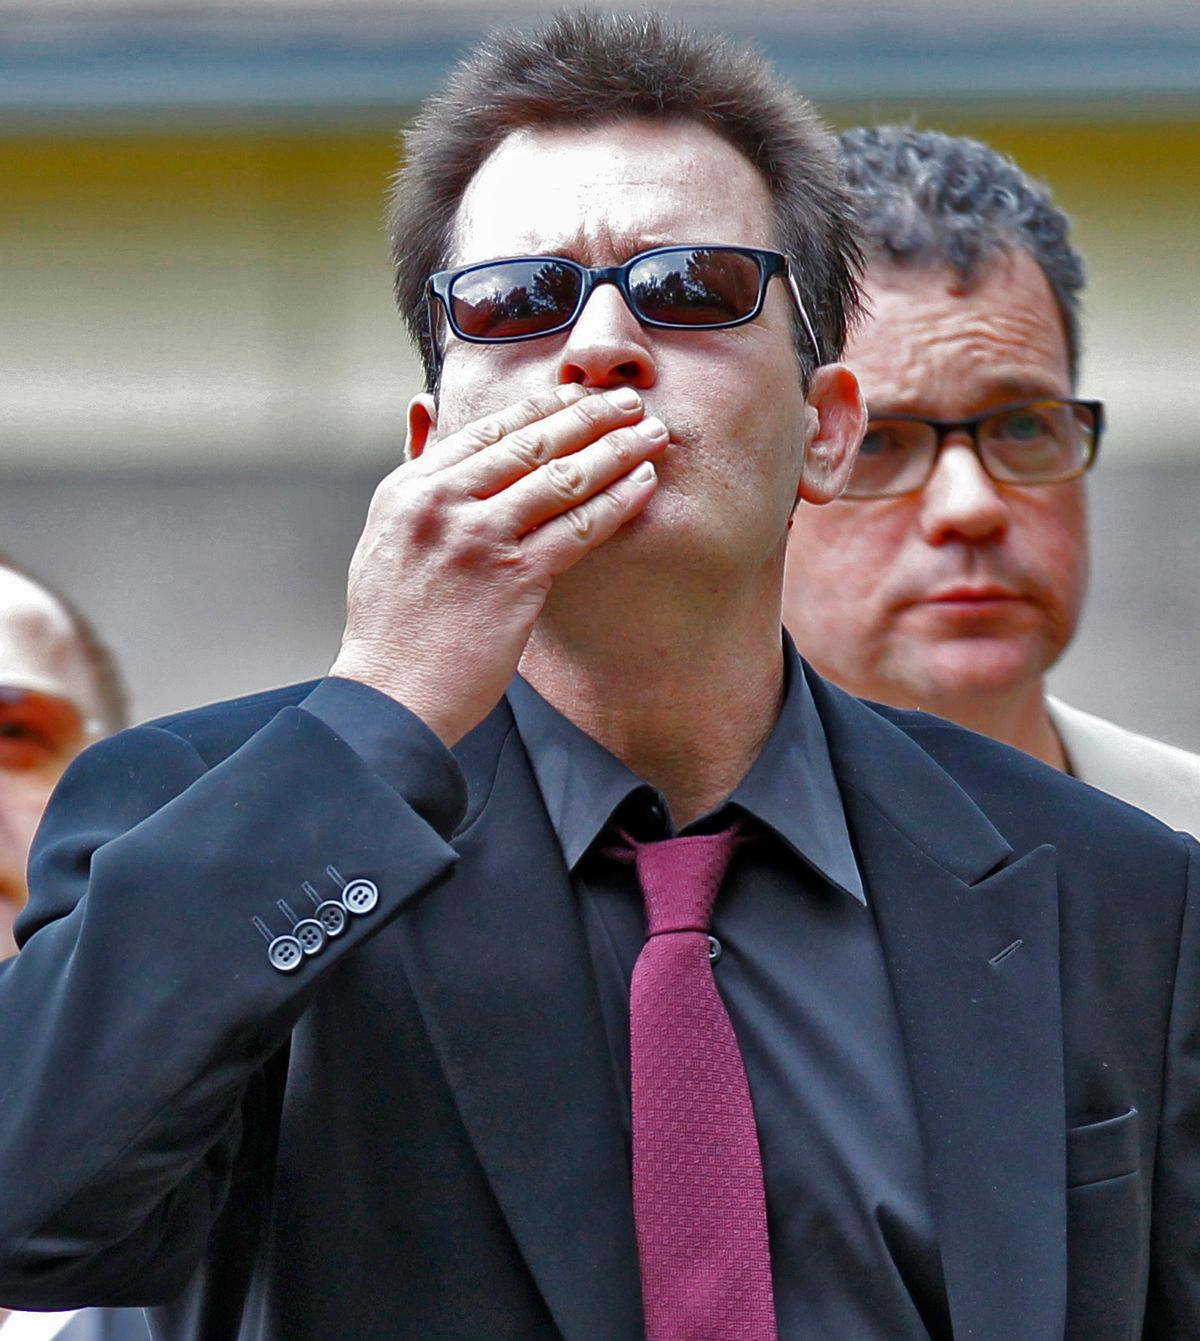 Charlie Sheen gestures with a victory sign as he arrives at the Pitkin County Courthouse in Aspen, Colo., on Monday, Aug 2, 2010, for a hearing in his domestic abuse case. (AP Photo/Ed Andrieski (Ed Andrieski)